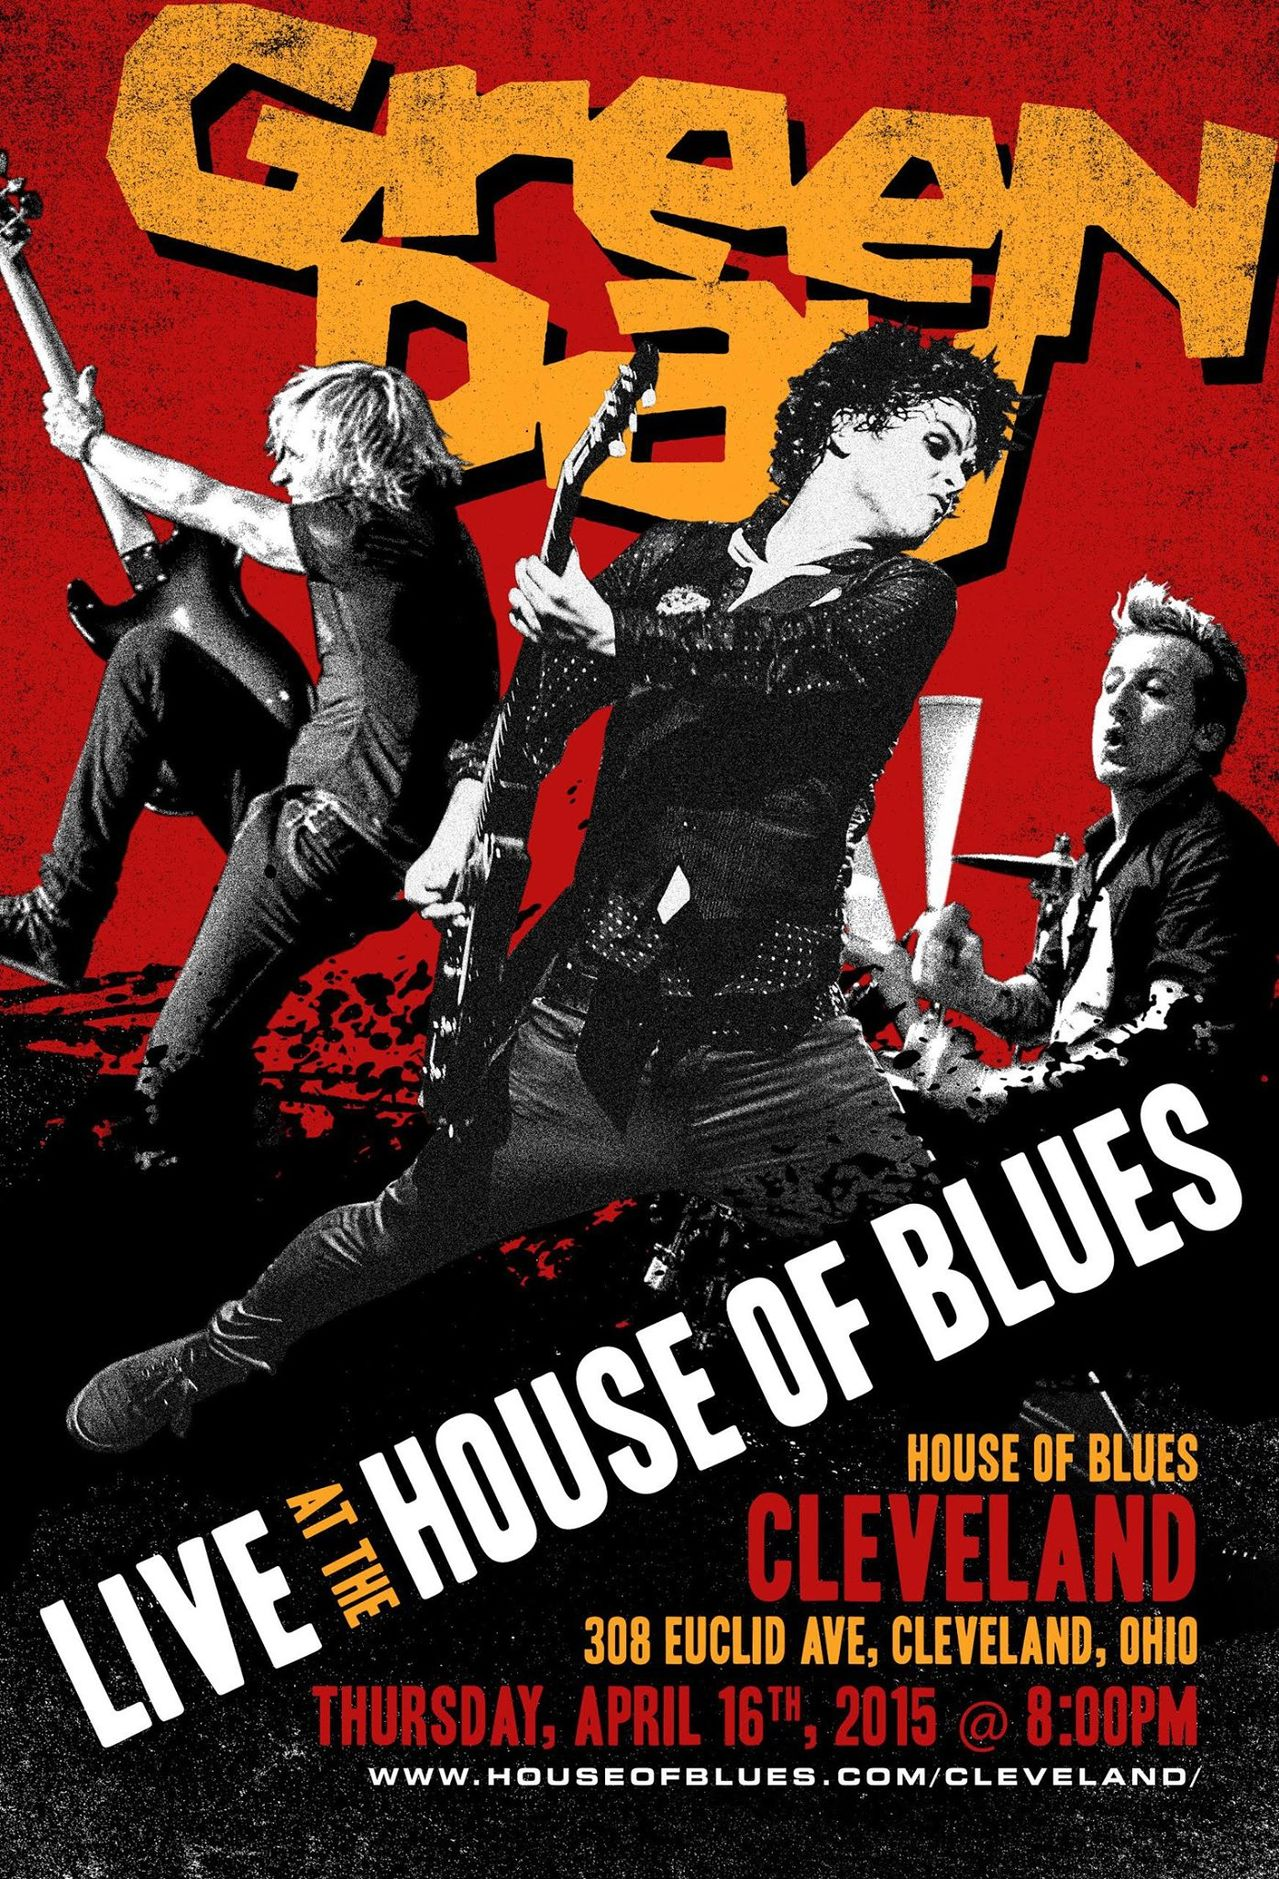 Green Day to play House of Blues in Cleveland